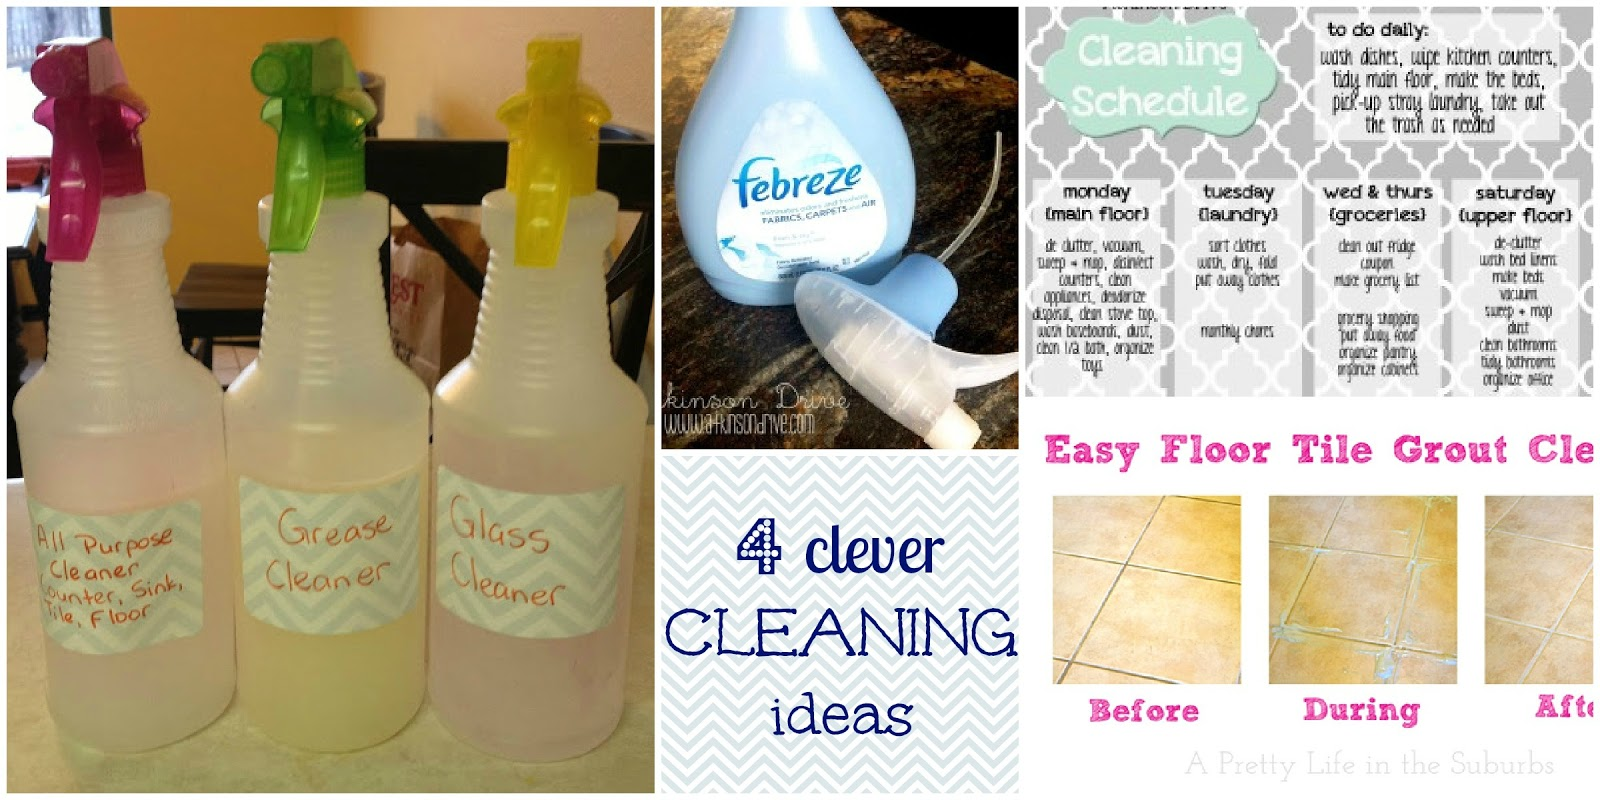 4 clever cleaning ideas